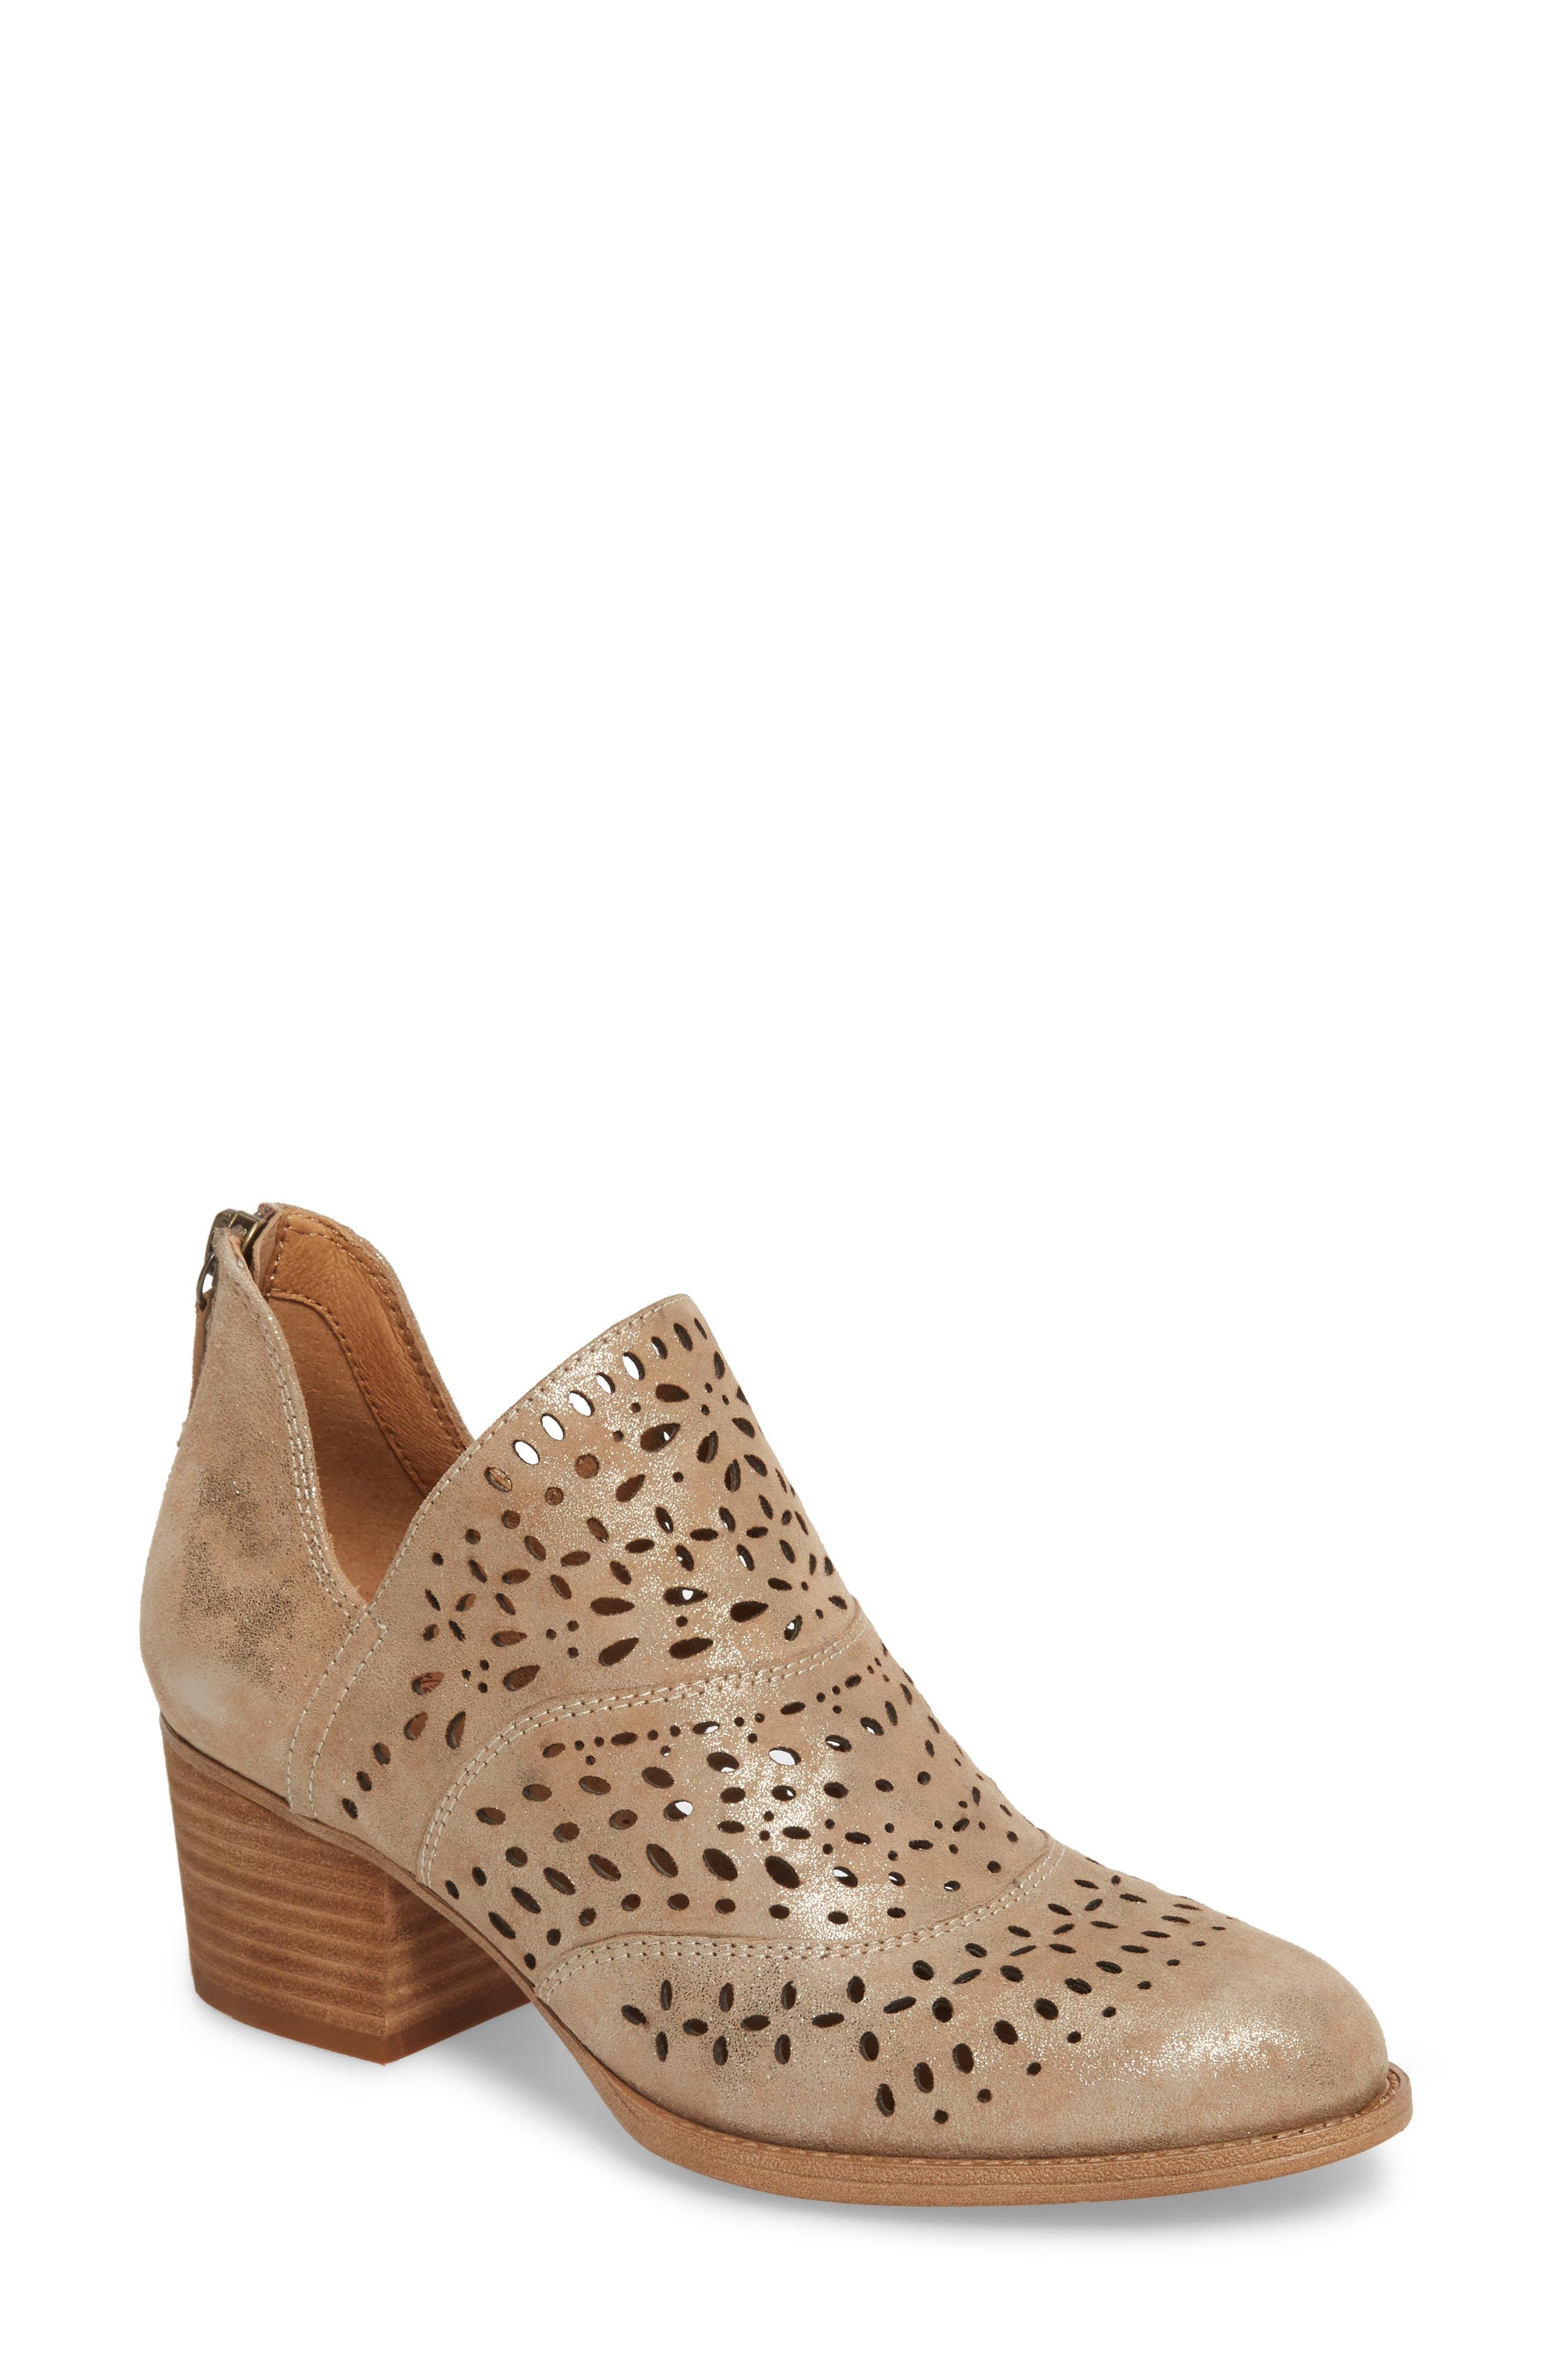 Wyoming Bootie,                         Main,                         color, 027